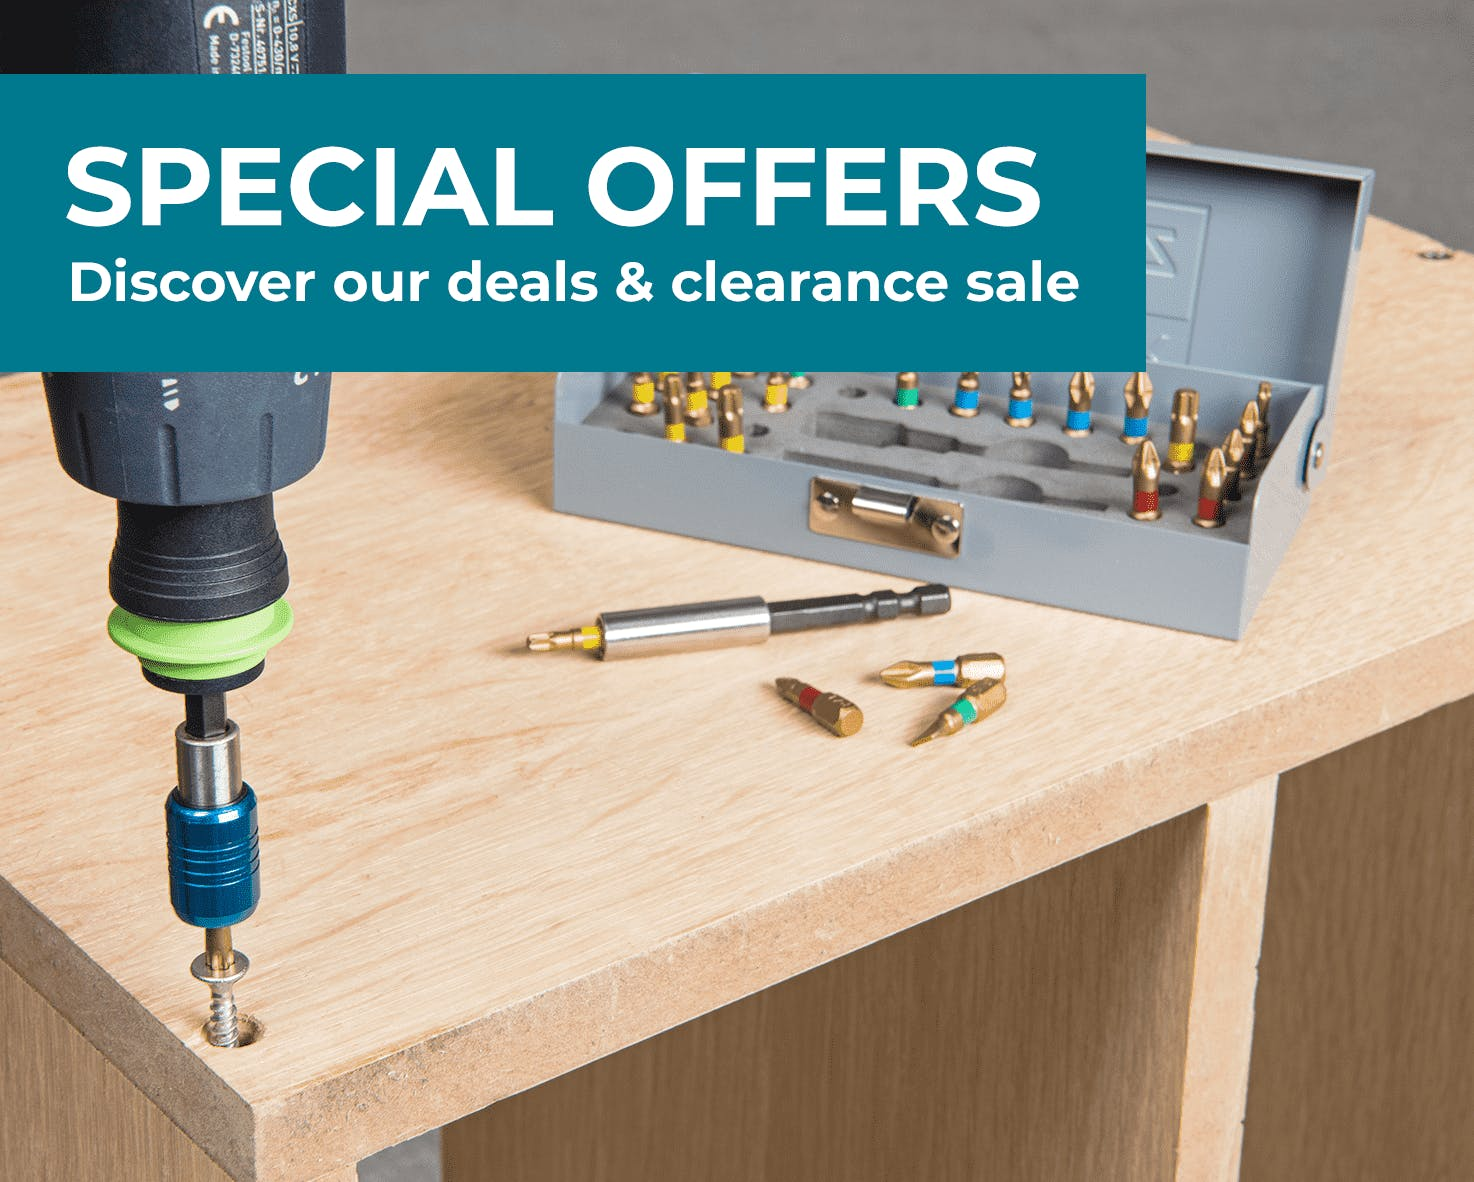 Special Offers and Clearance Sale